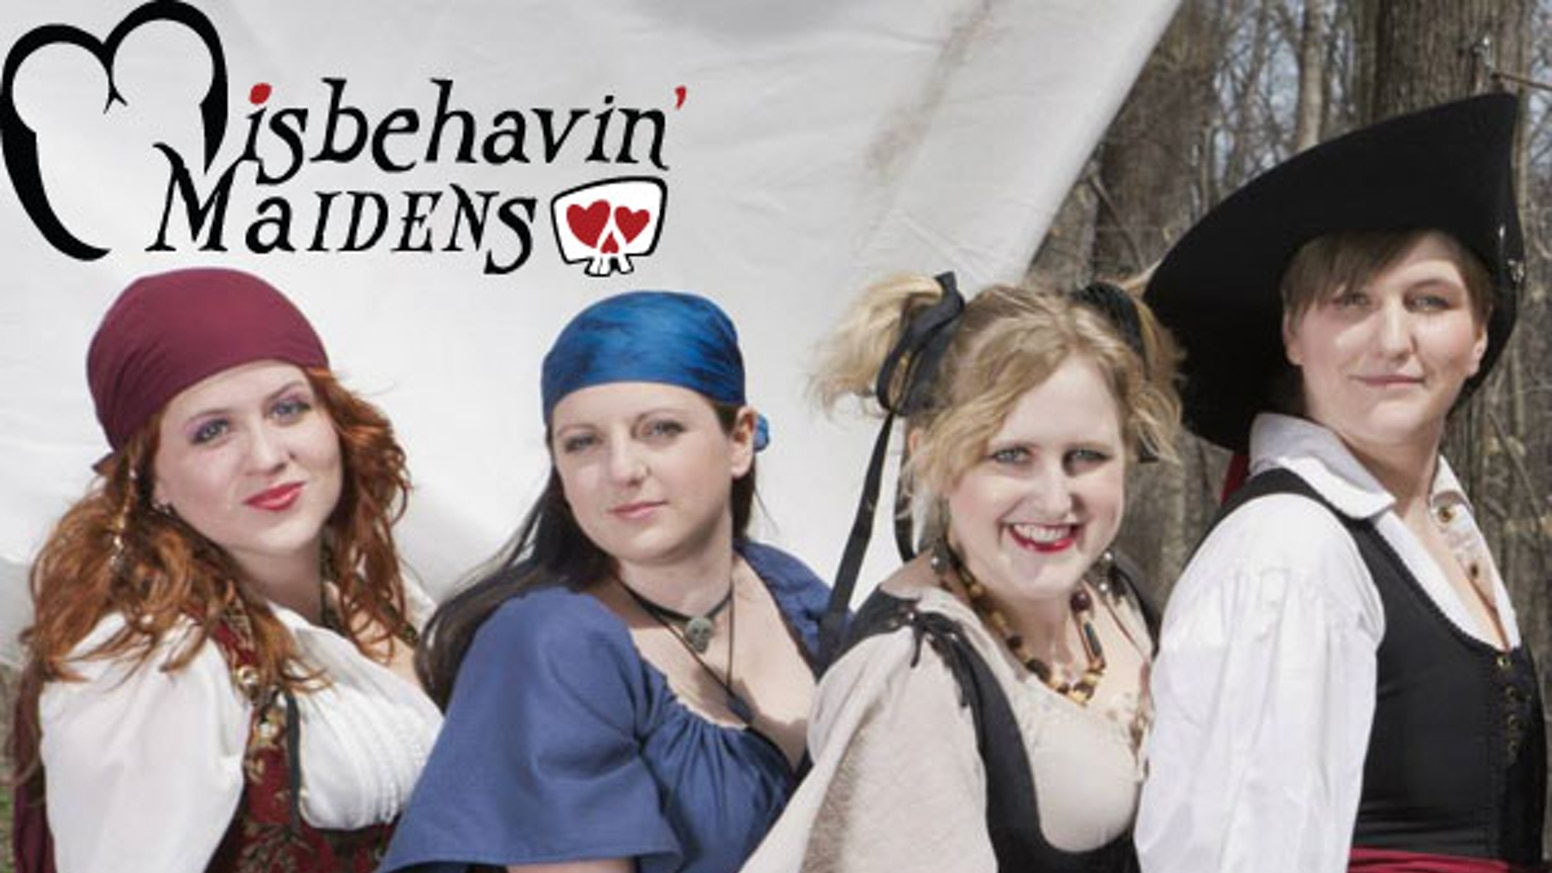 The Misbehavin' Maidens are lewd lyrical lasses with tight chorals and loose morals: cosplayers singing nerdy and dirty songs!